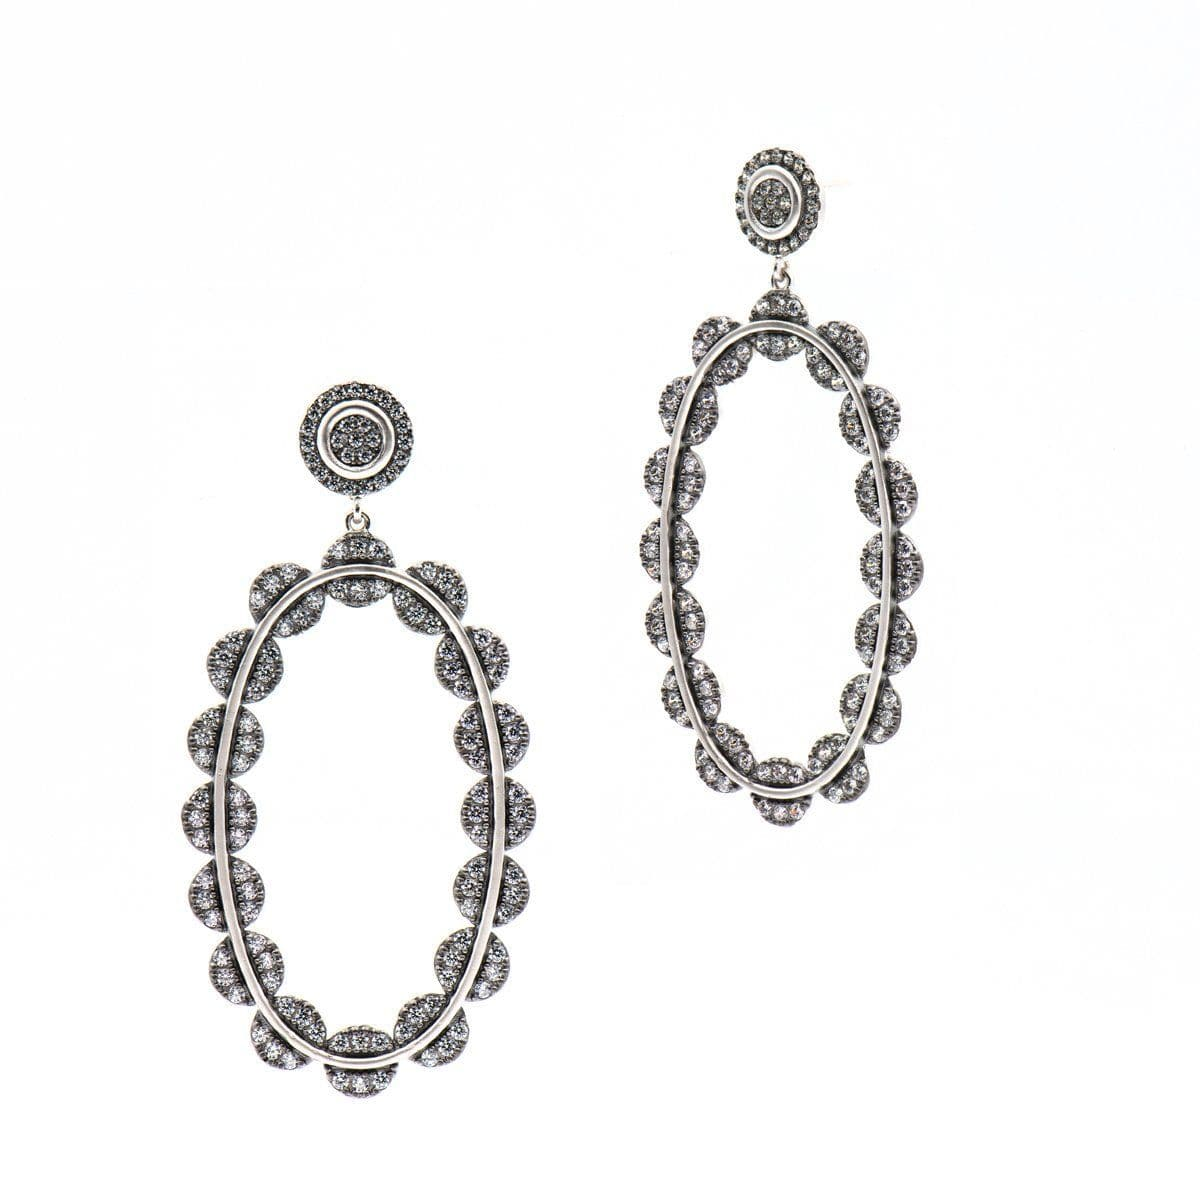 Industrial Finish Large Pave Oval Drop Earrings - PRZE020312B - Freida Rothman